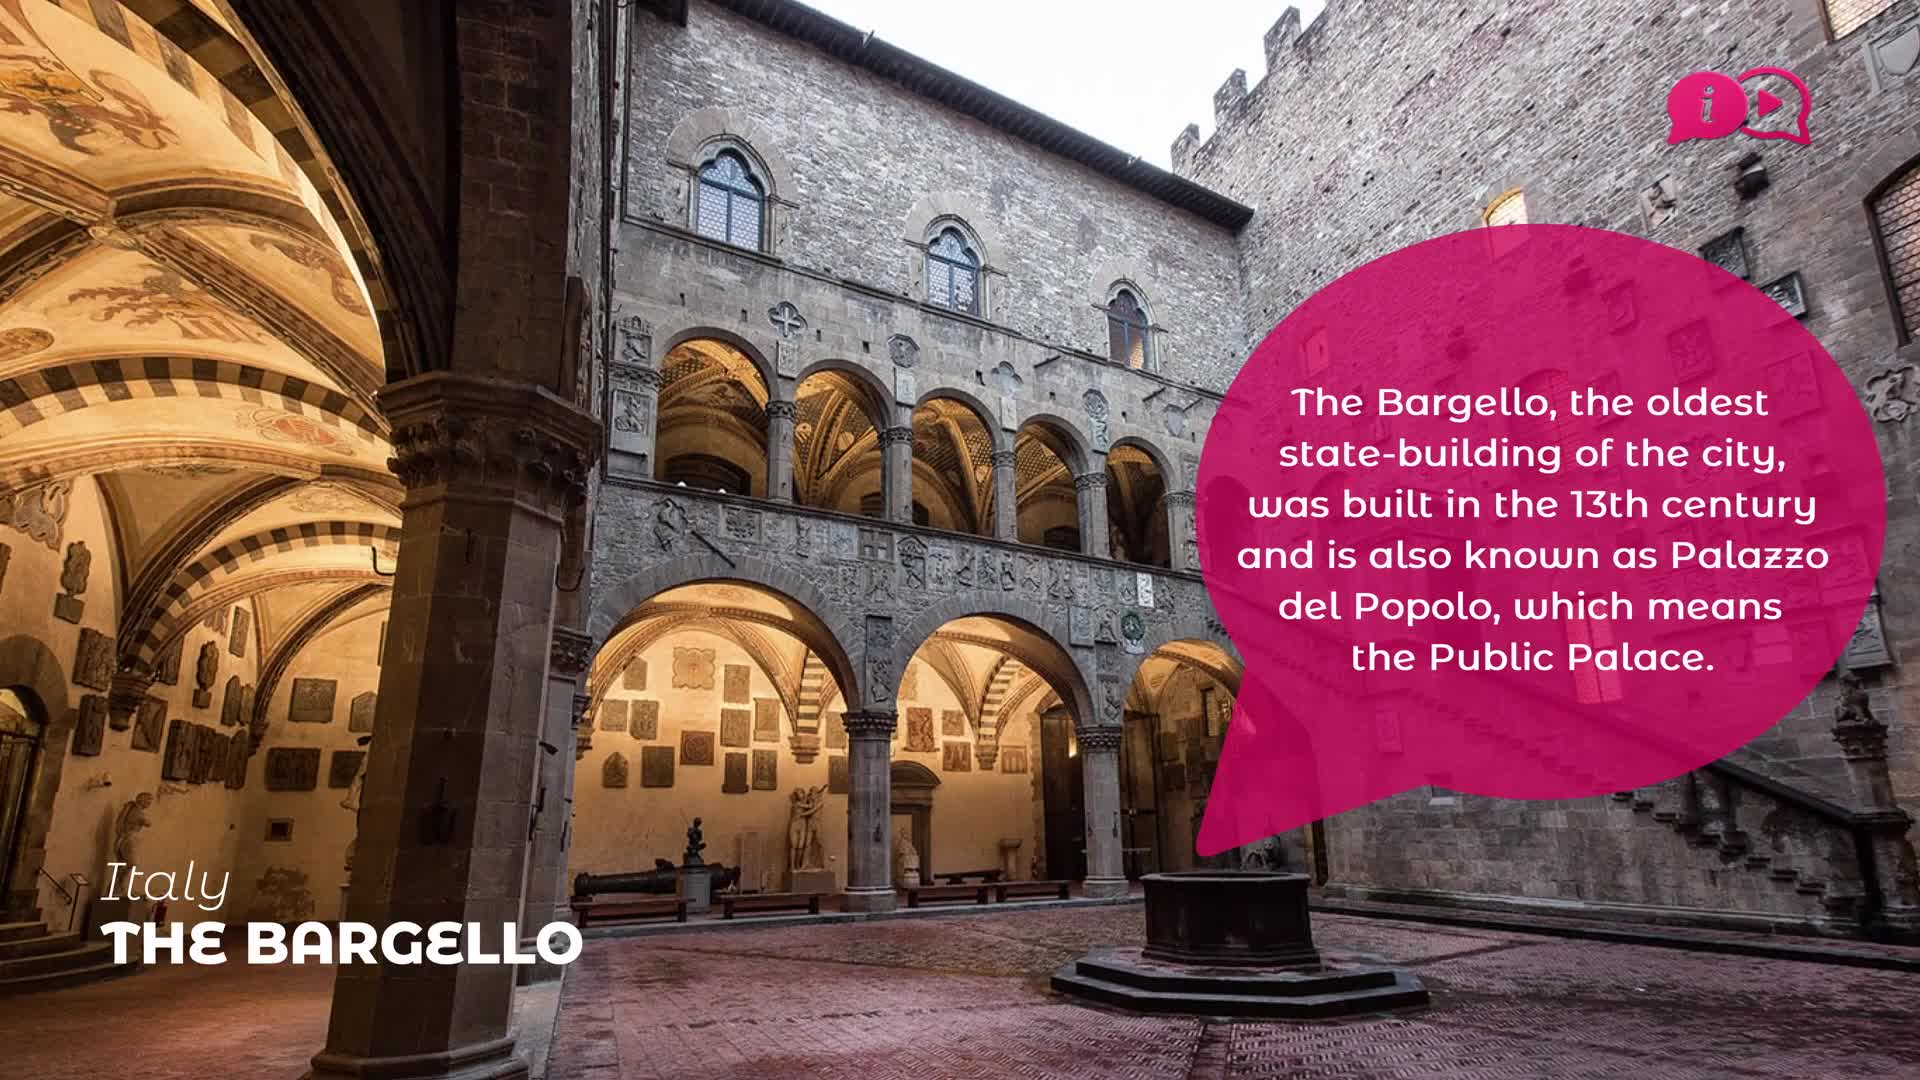 THE BARGELLO